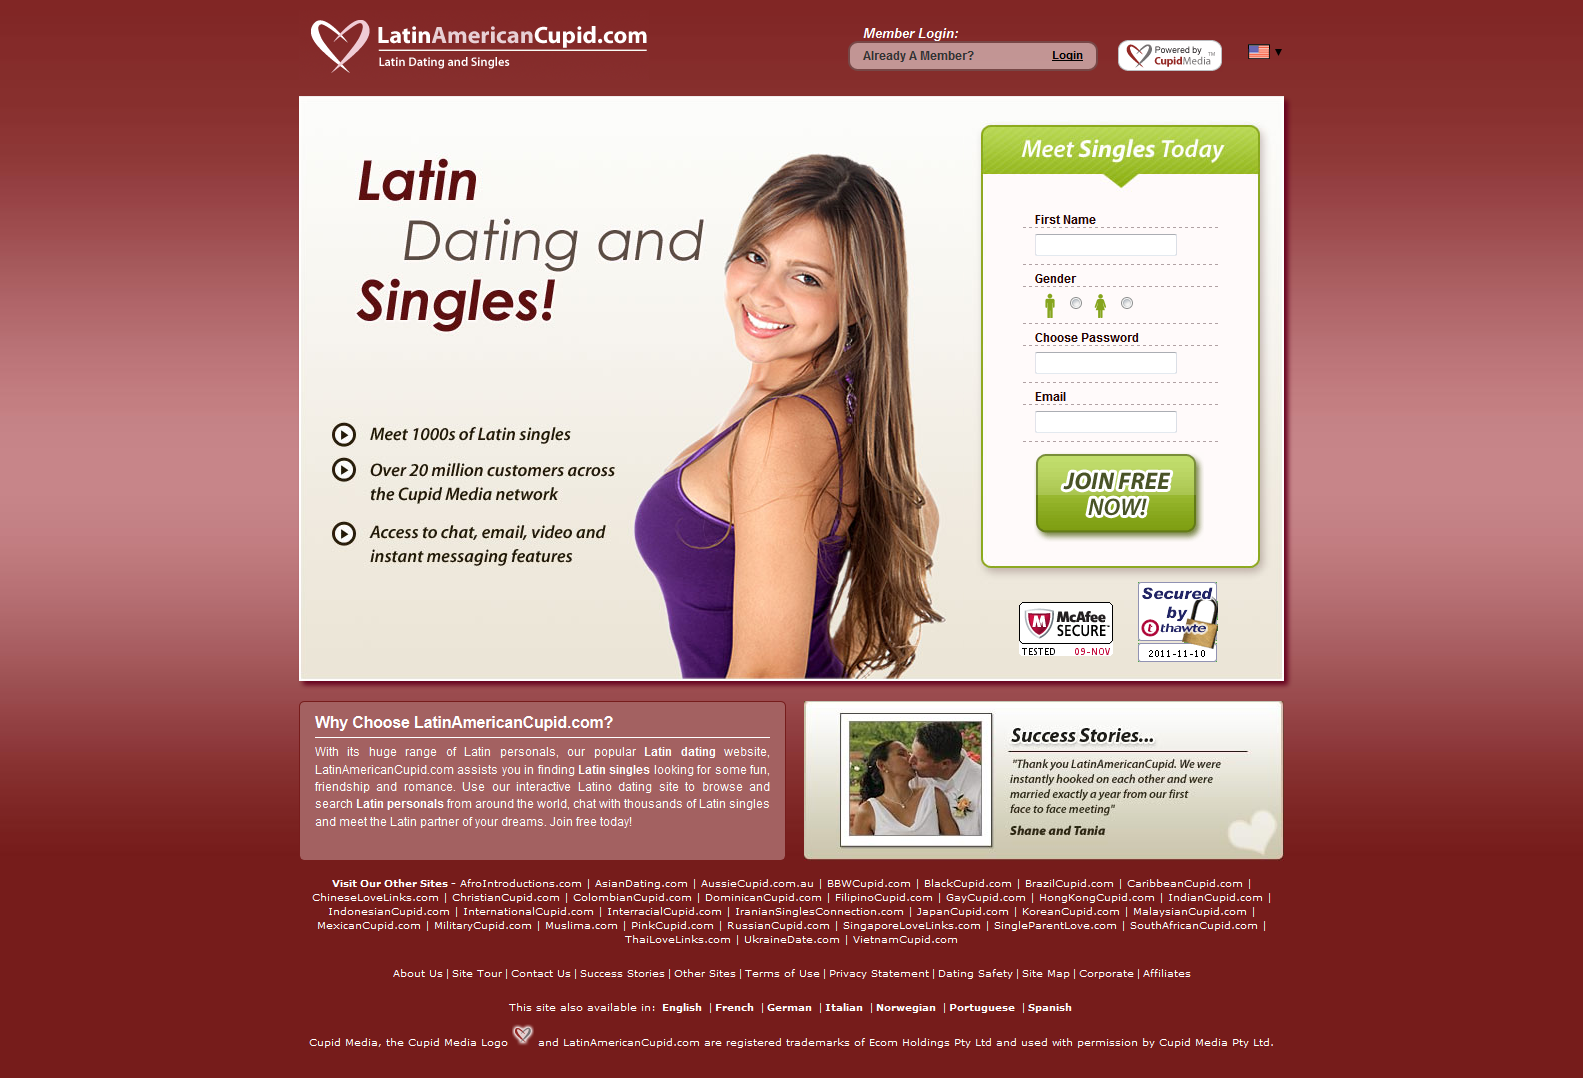 Dating site with cupid in the name